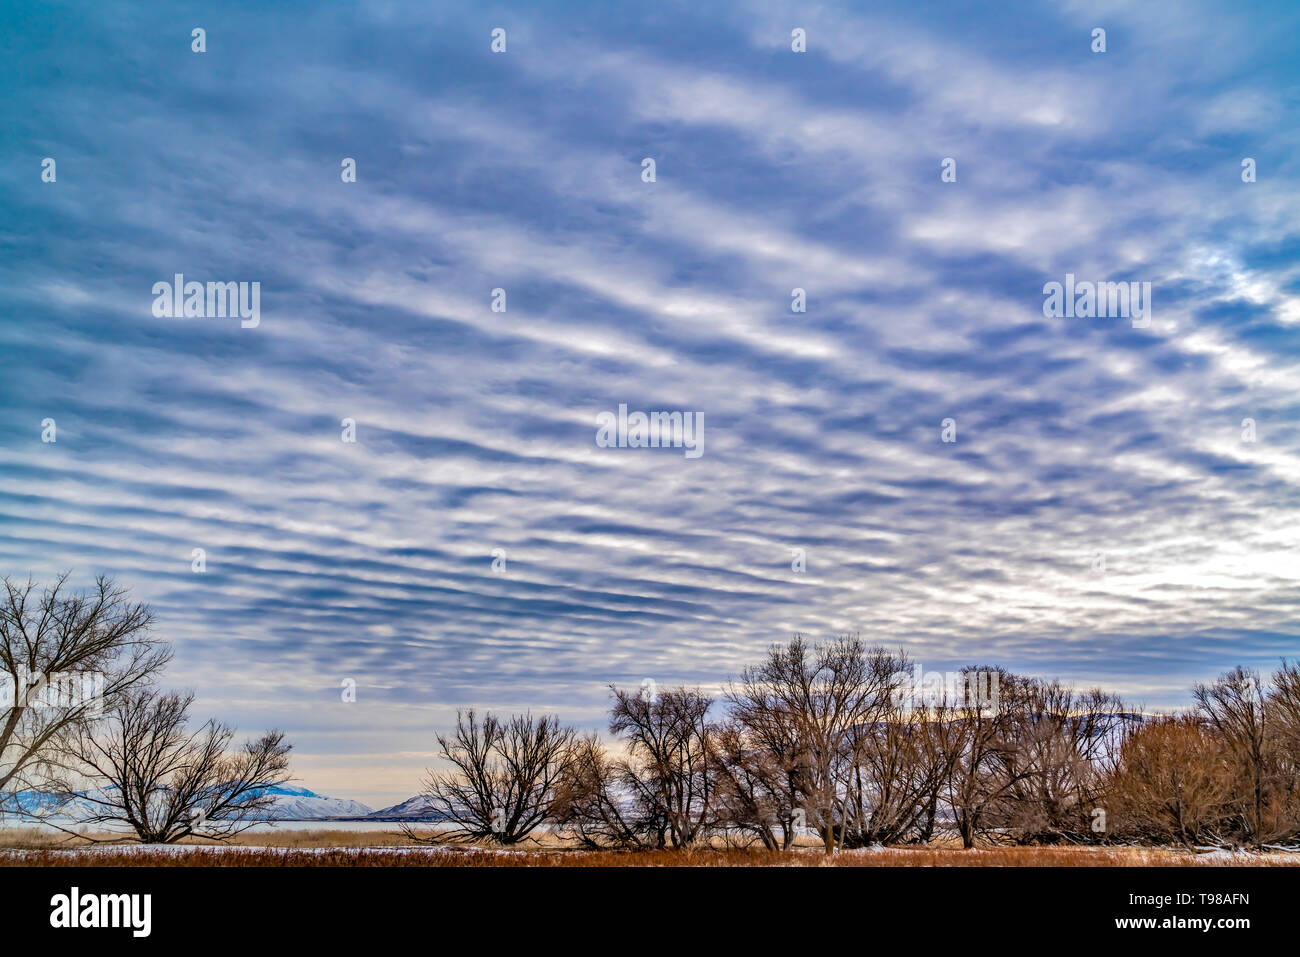 Defocused view of a dramatic blue sky filled with white puffy clouds - Stock Image